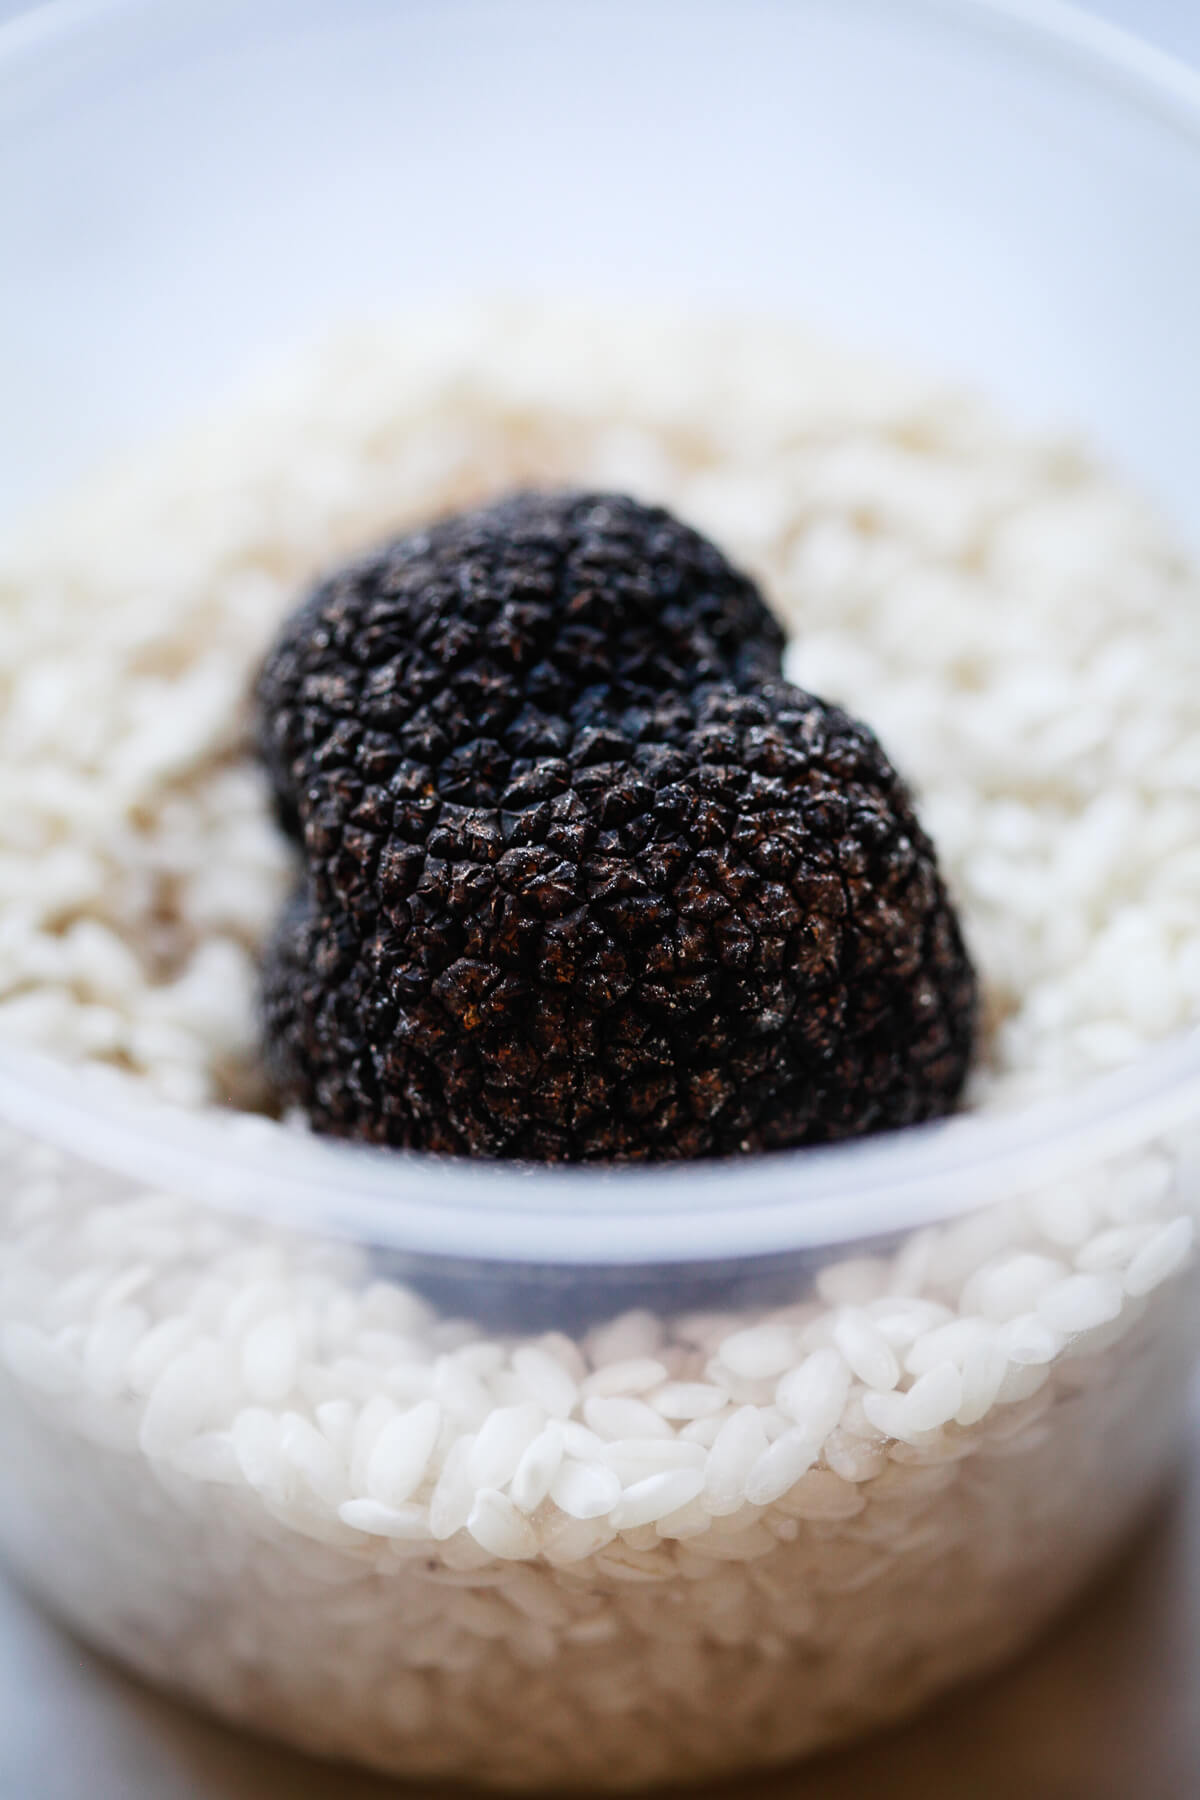 A black truffle in a container of rice.